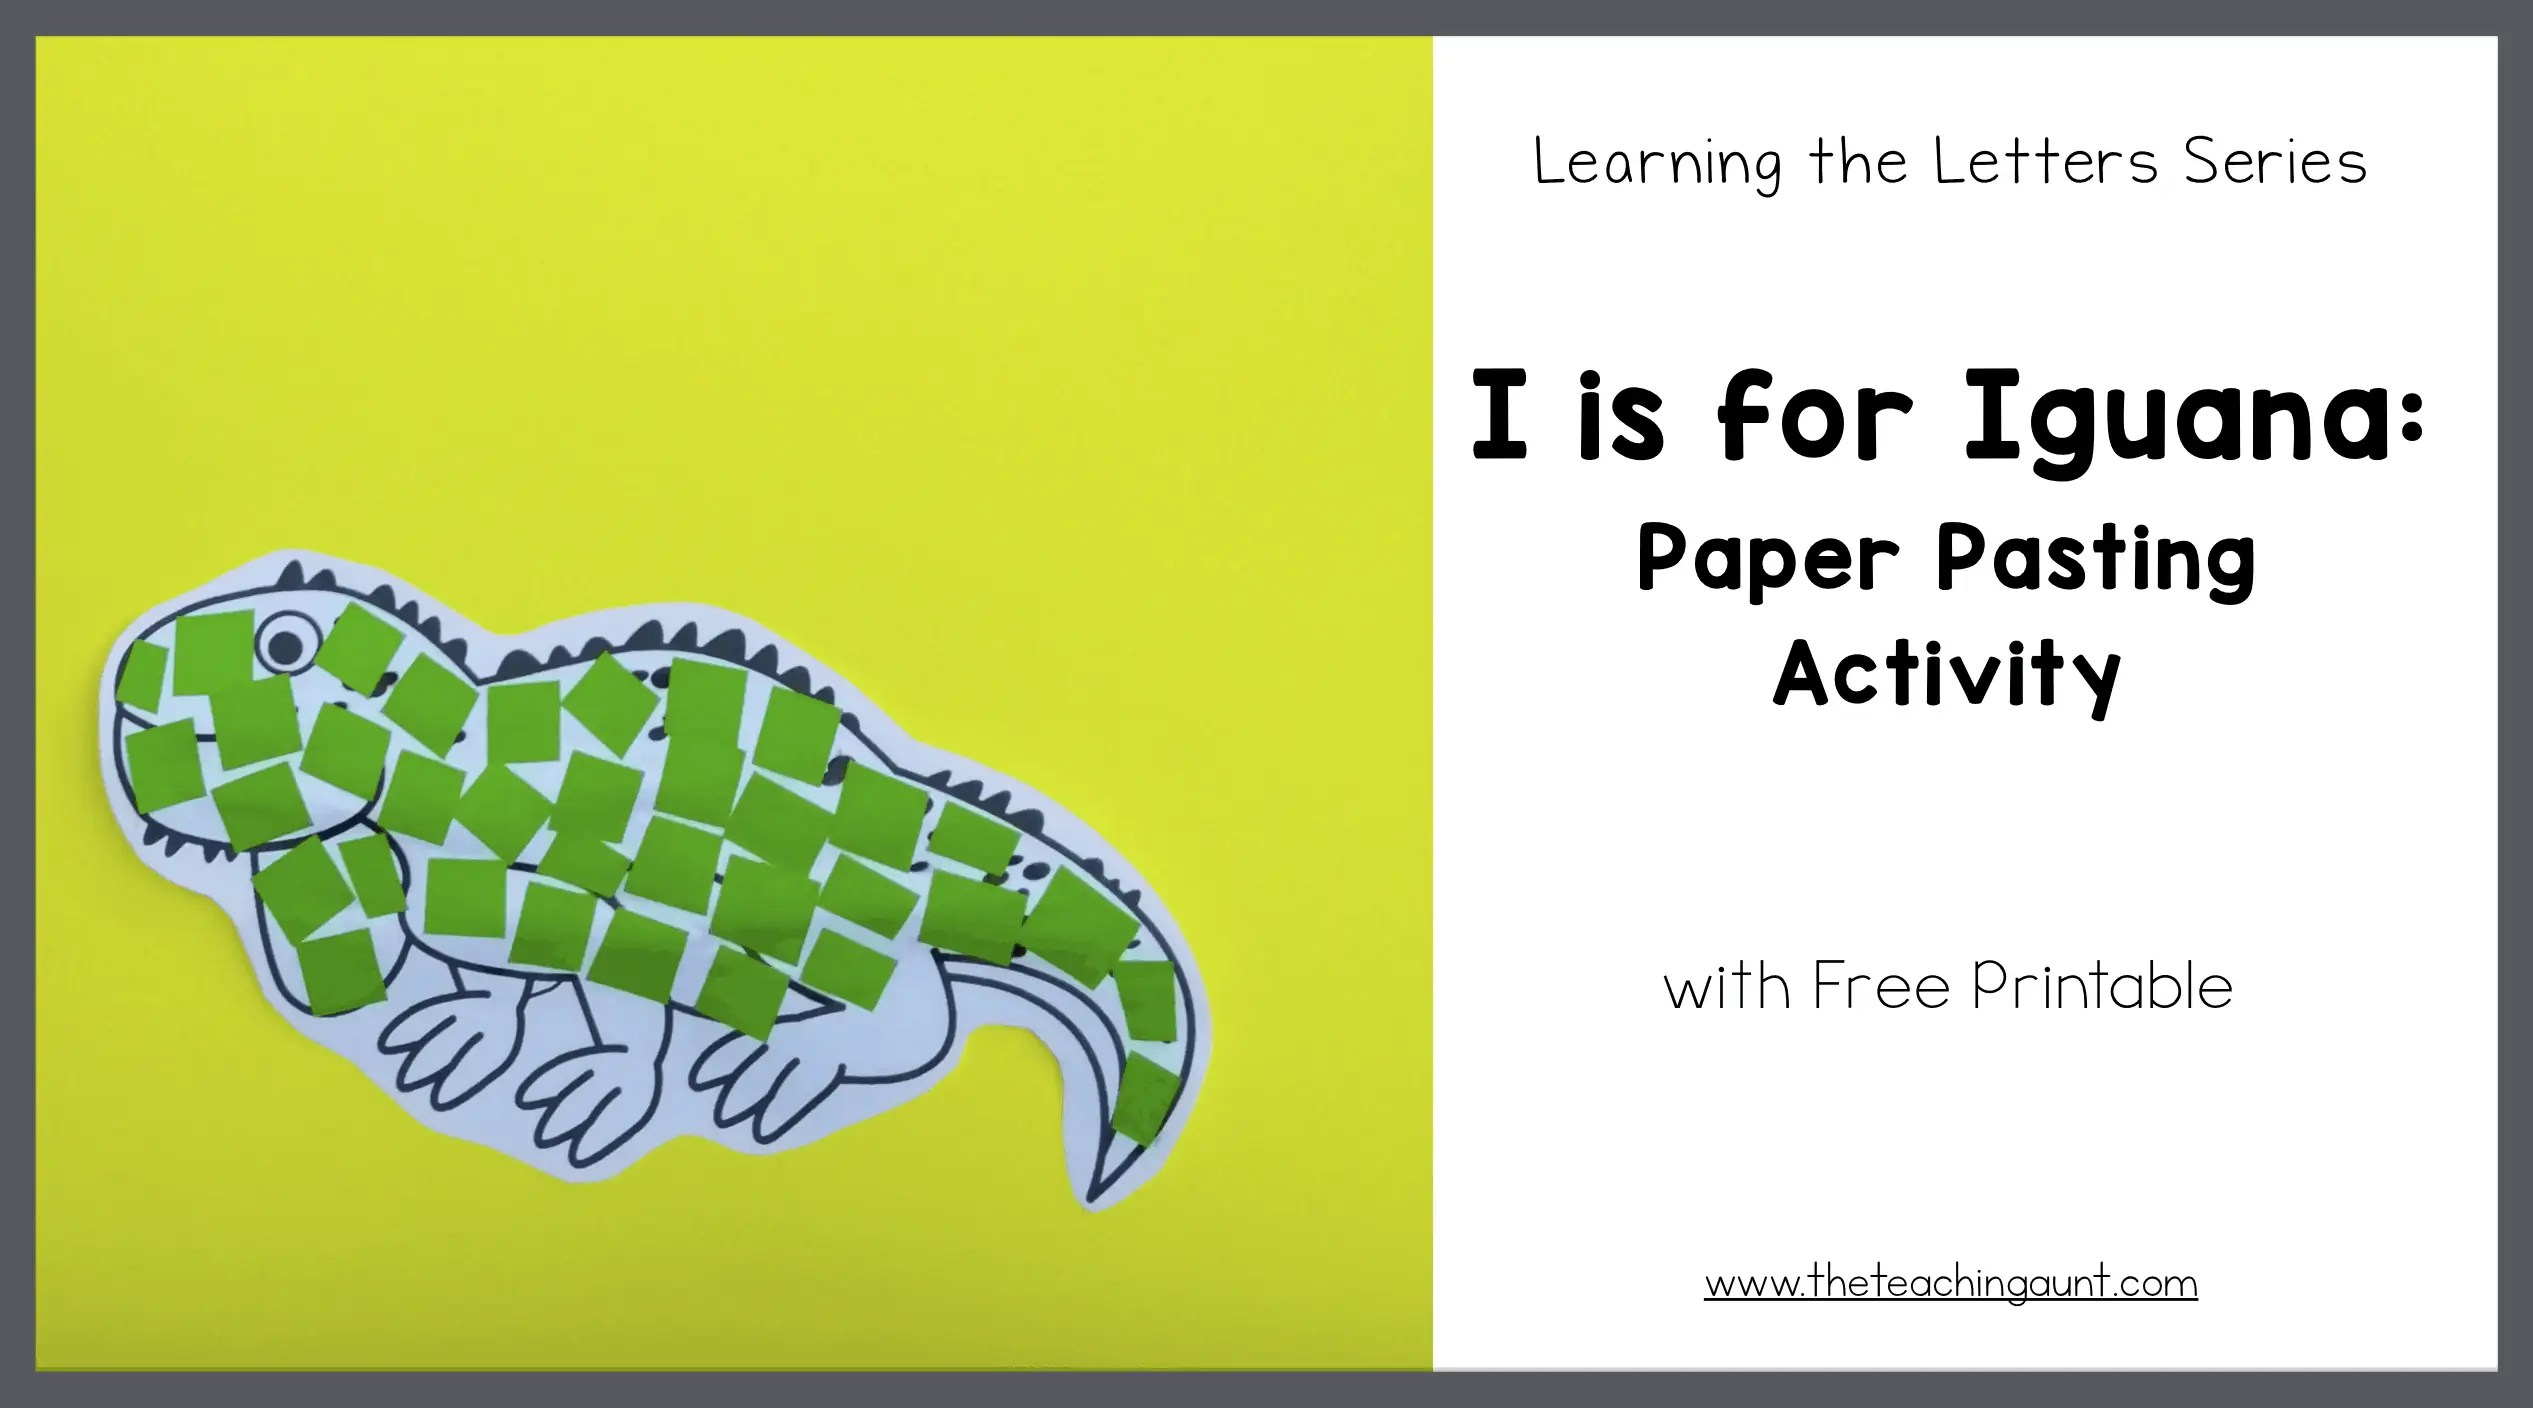 I is for Iguana: Paper Pasting Activity